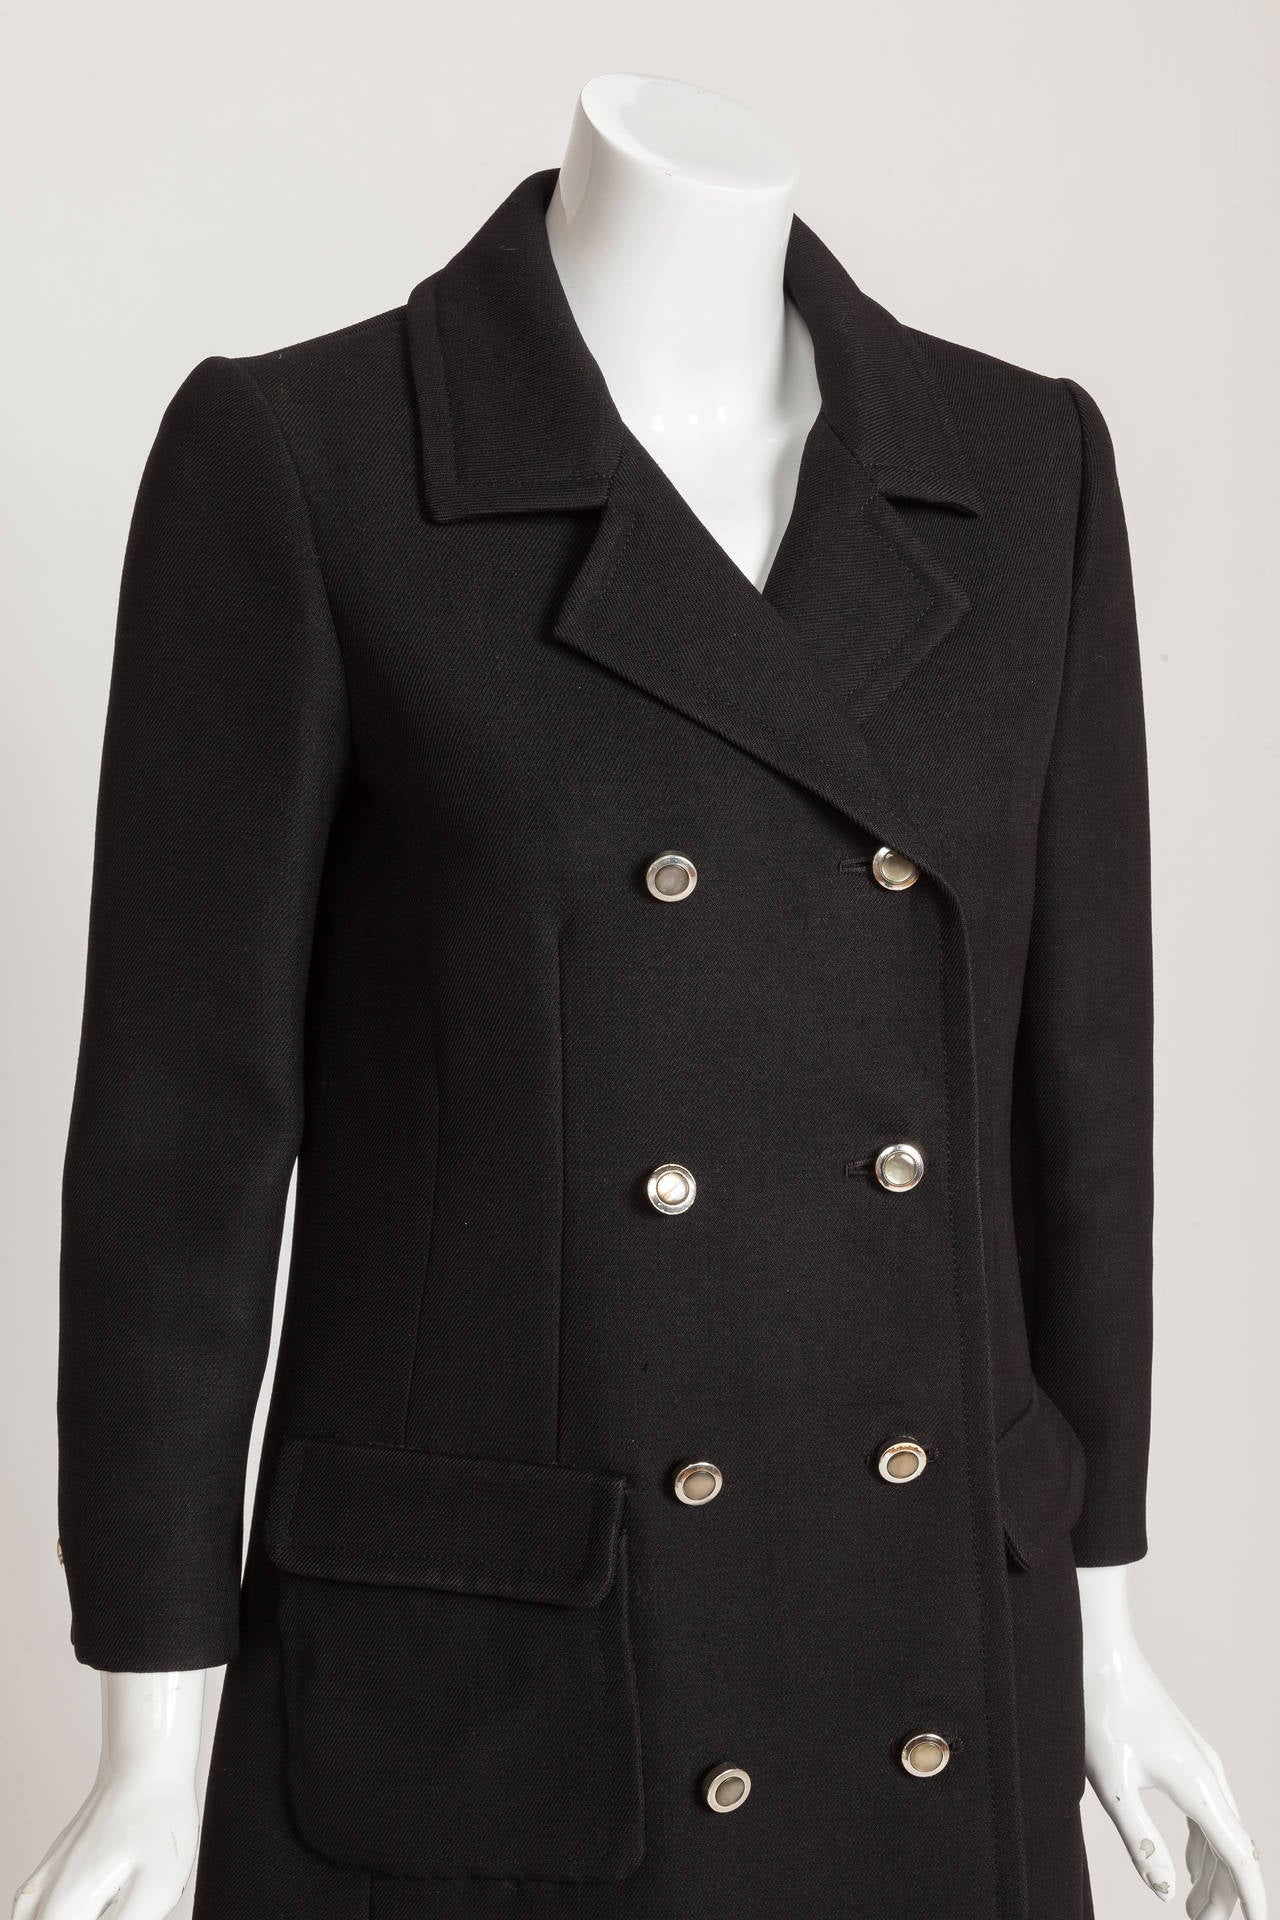 1960s Pierre Cardin Double-Breasted Black Wool Twill 3/4 Length Coat Jacket 3